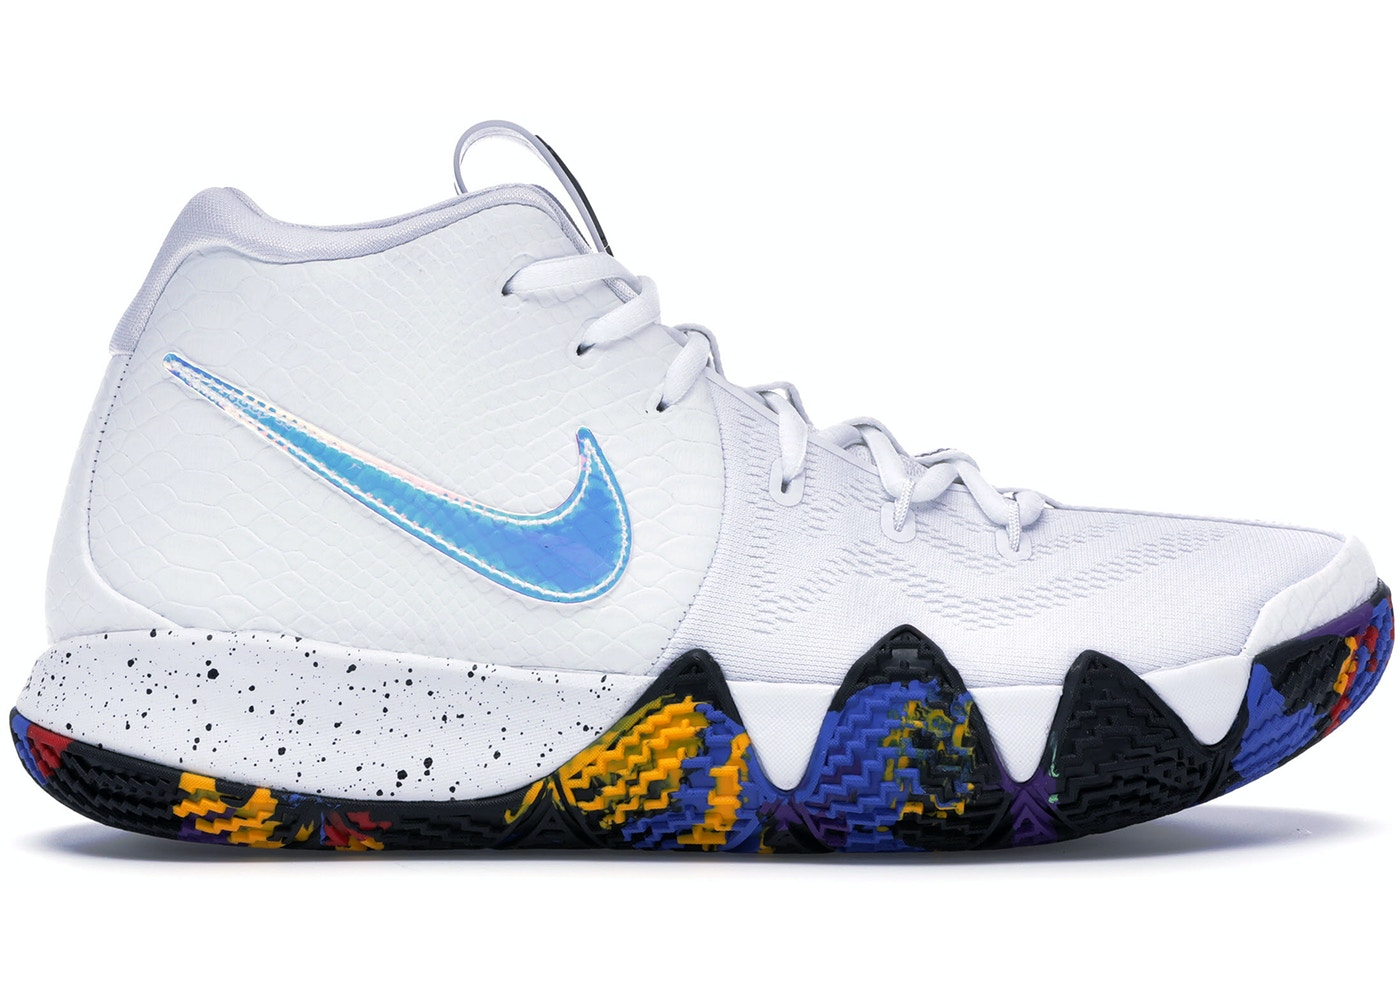 6ac7ad7af7a4a8 Buy Nike Basketball Kyrie Shoes   Deadstock Sneakers